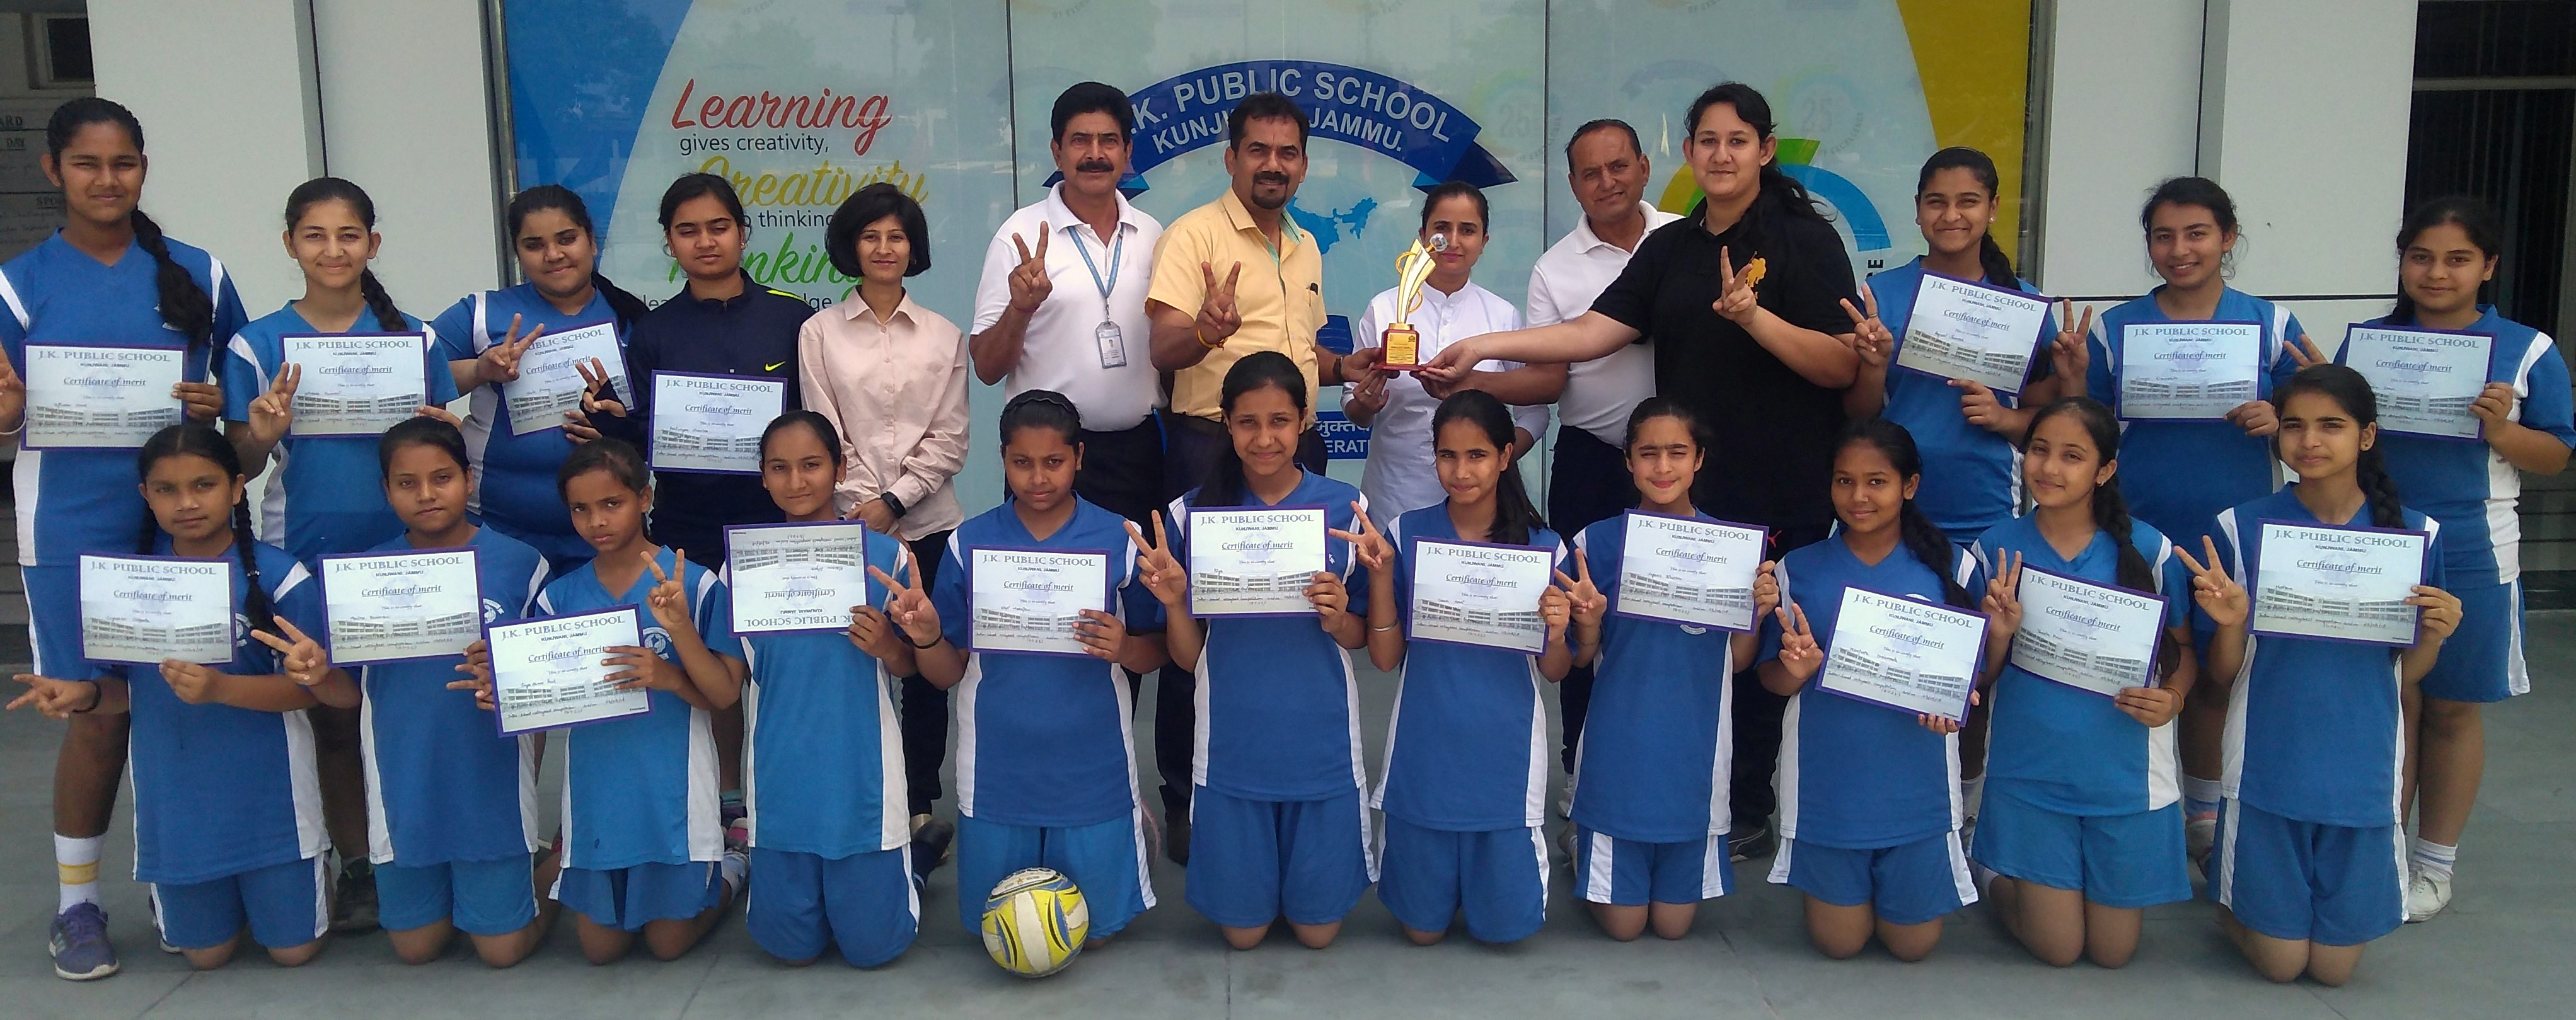 JK PUBLIC SCHOOL, KUNJWANI SHINES IN U-14 AND U-17 VOLLEYBALL CHAMPIONSHIP